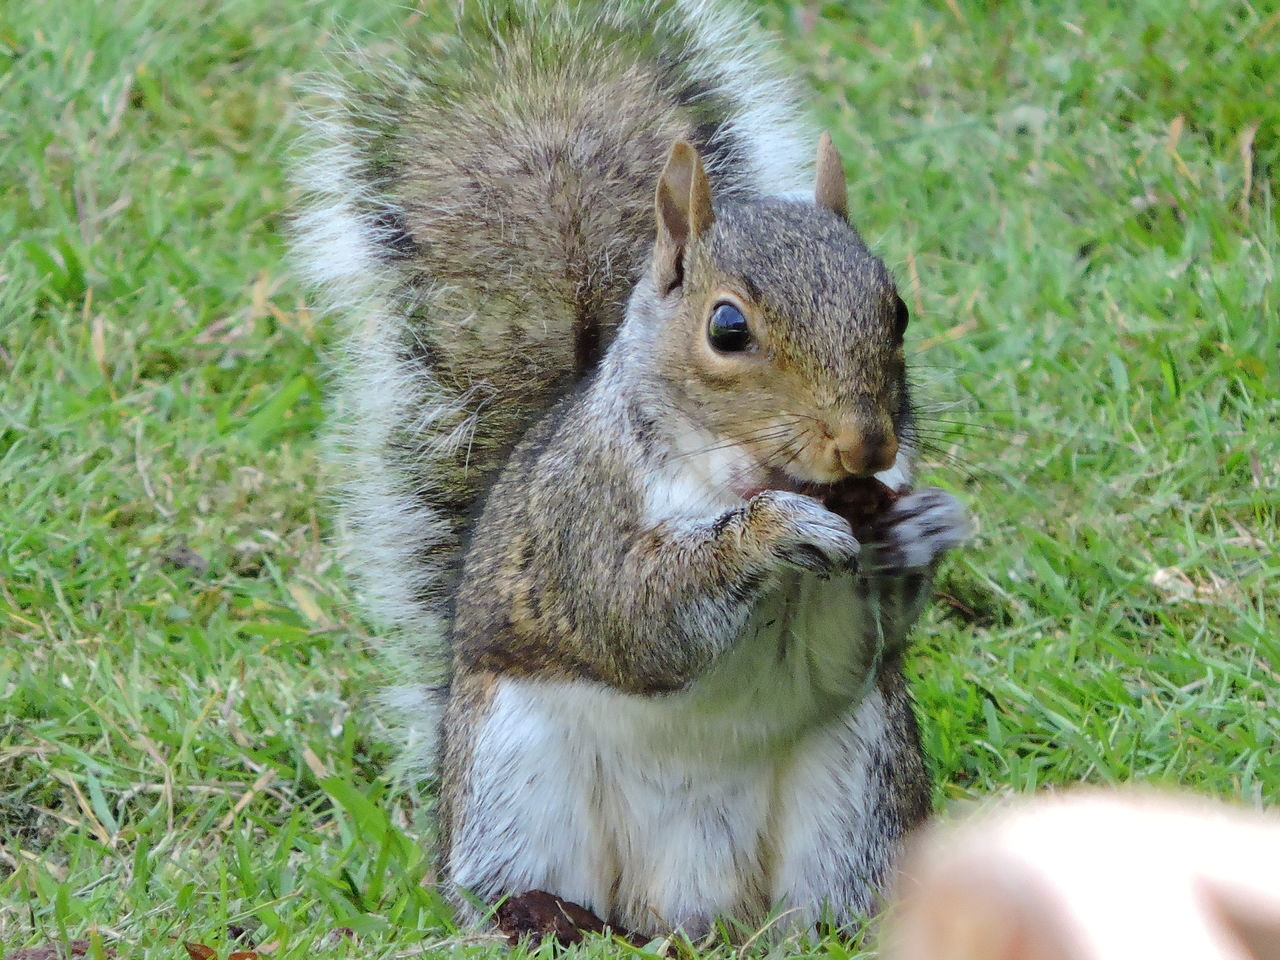 animal themes, grass, animals in the wild, one animal, squirrel, mammal, animal wildlife, outdoors, day, nature, field, no people, close-up, eating